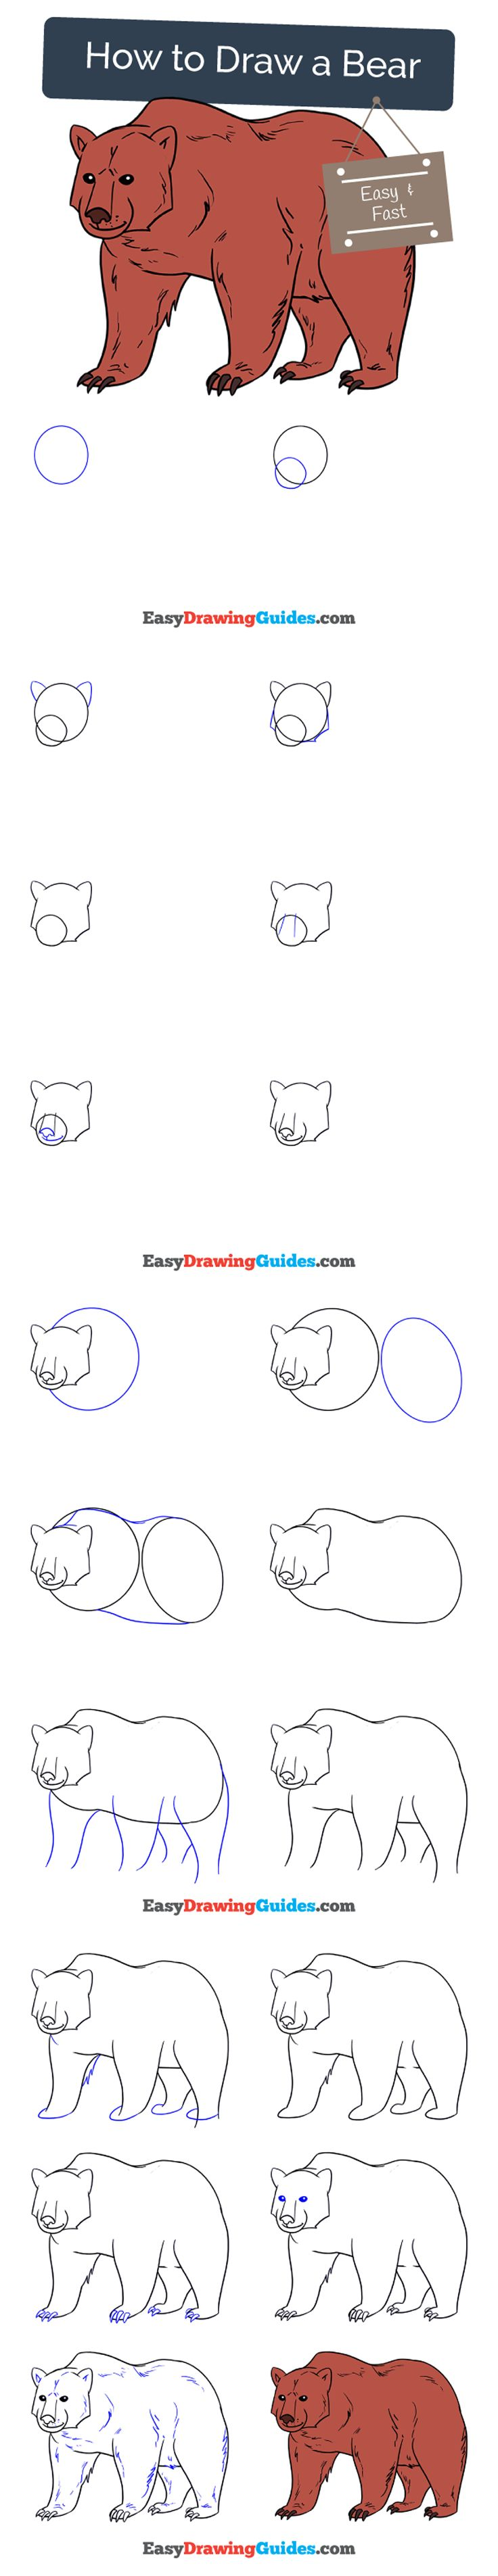 322 best drawing step by step 2 images on pinterest drawing step